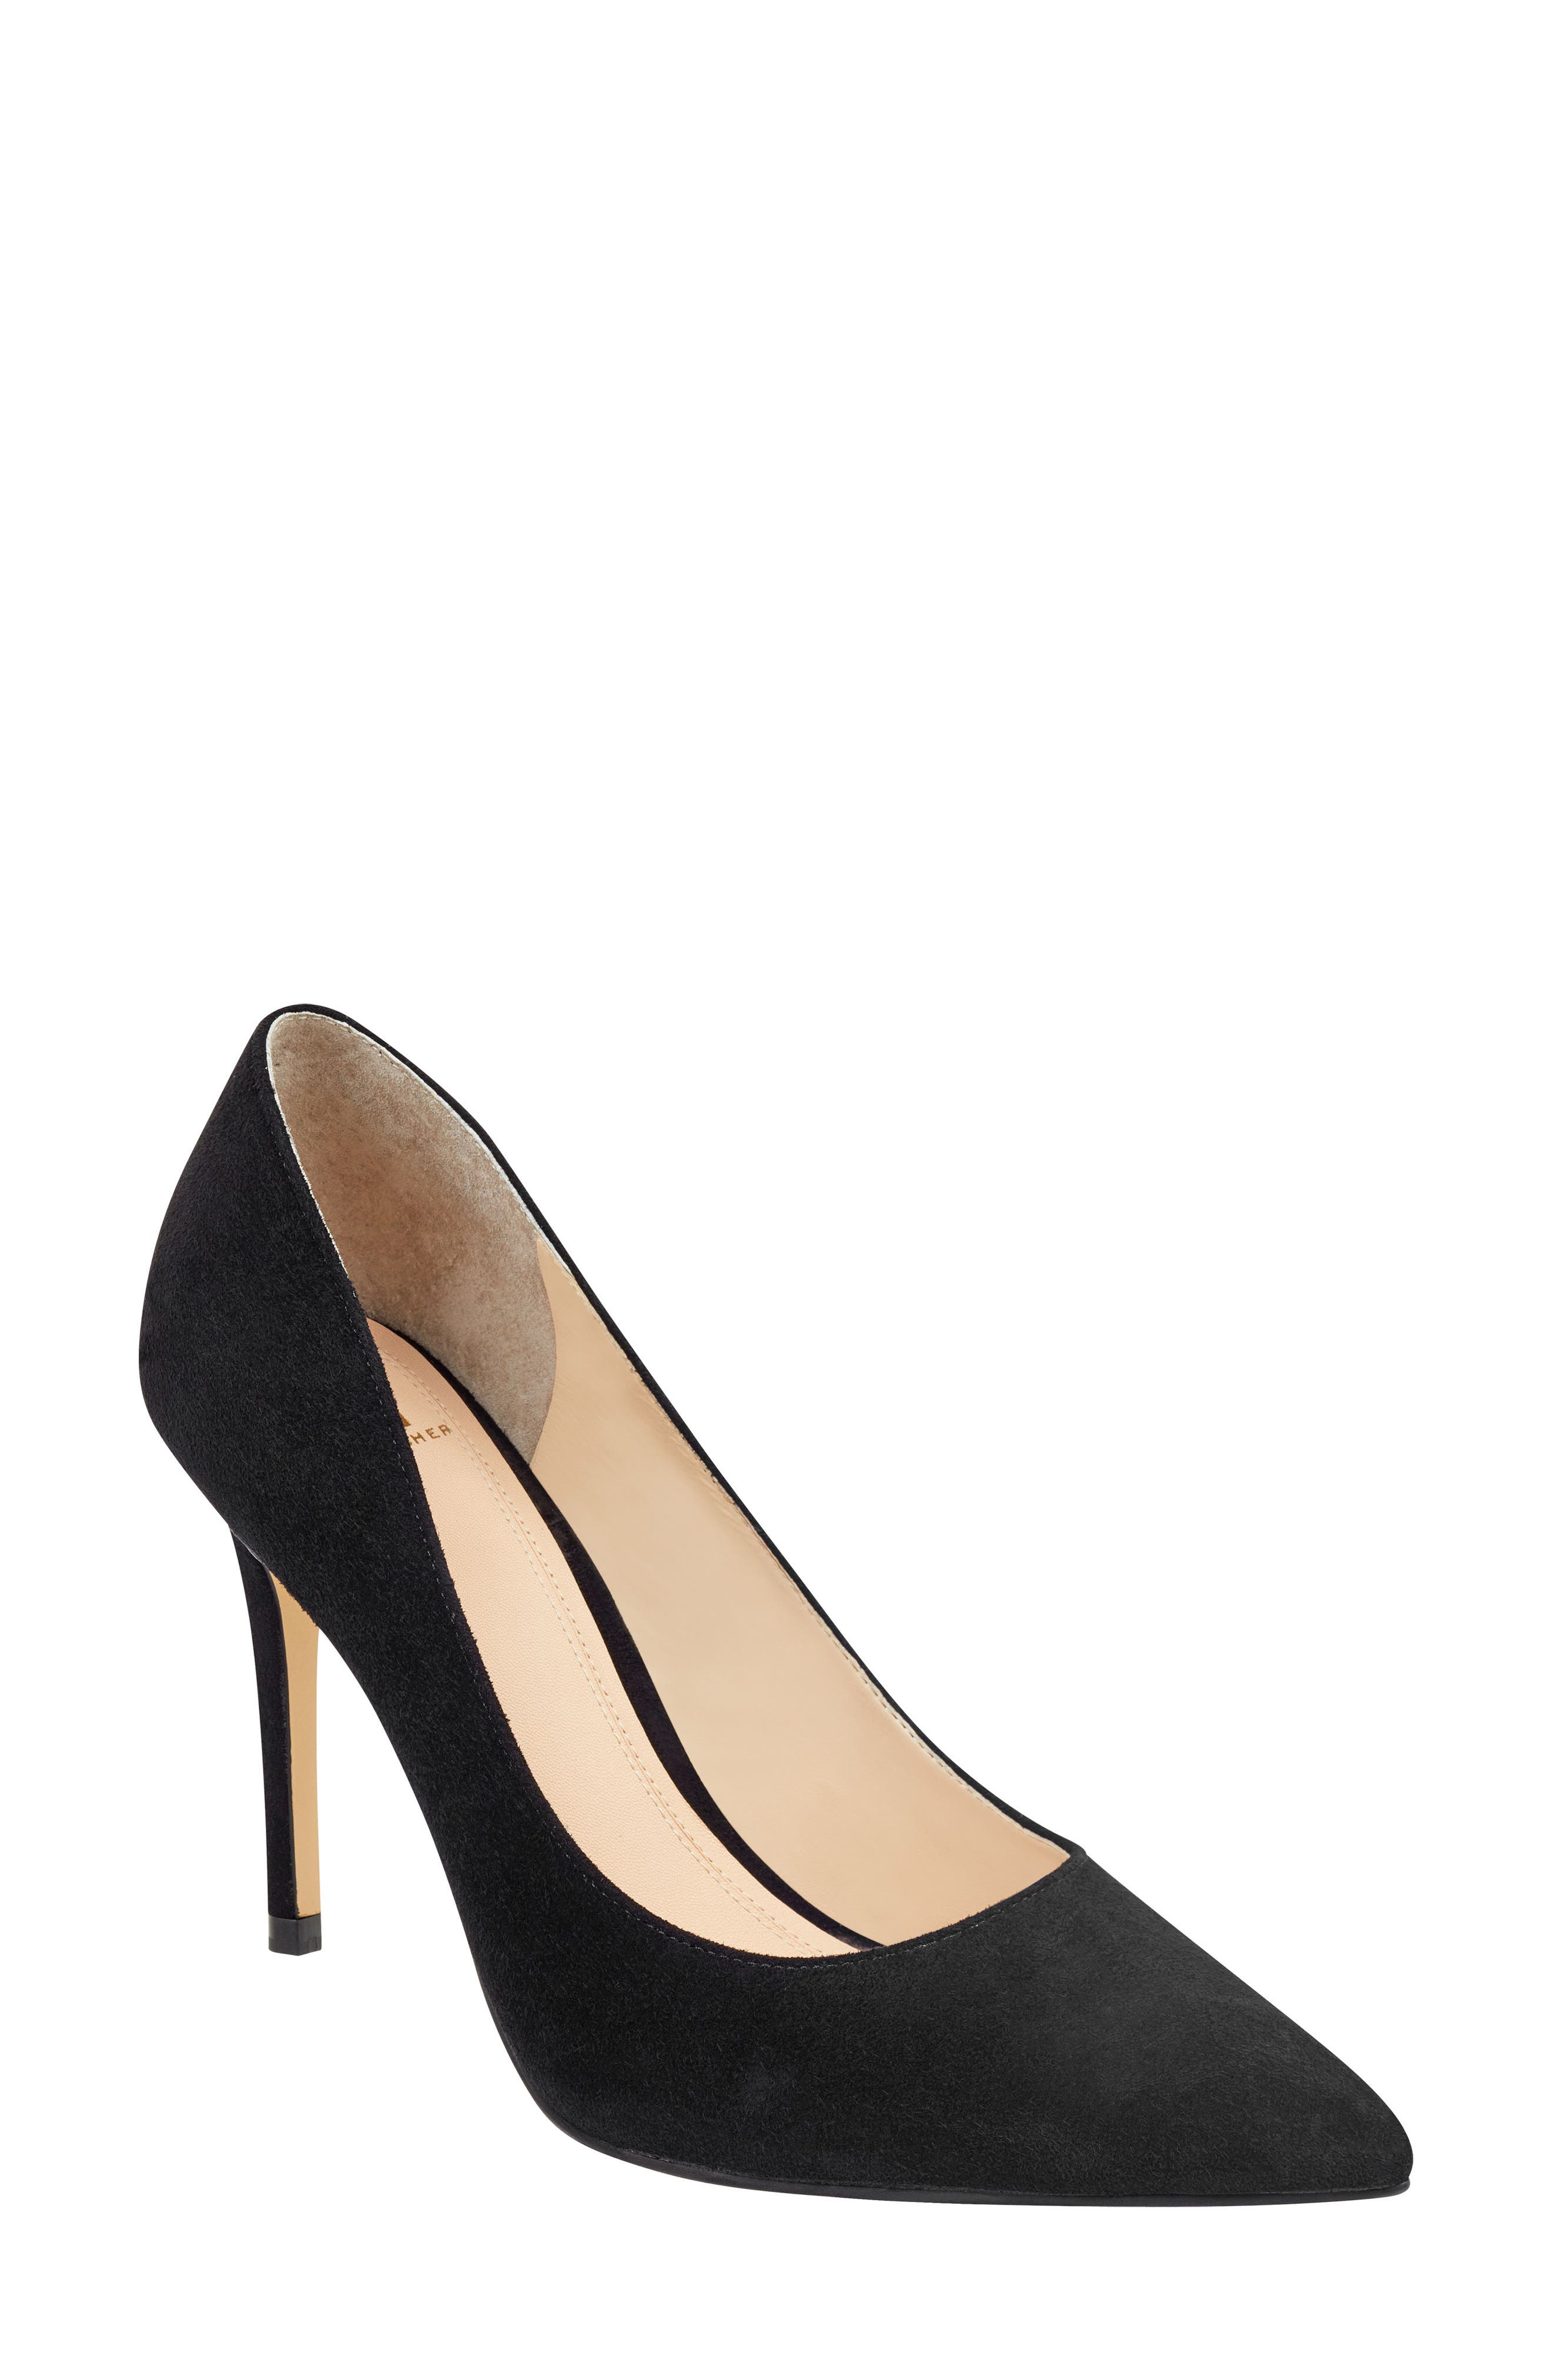 Jaxon Pump,                         Main,                         color, BLACK SUEDE